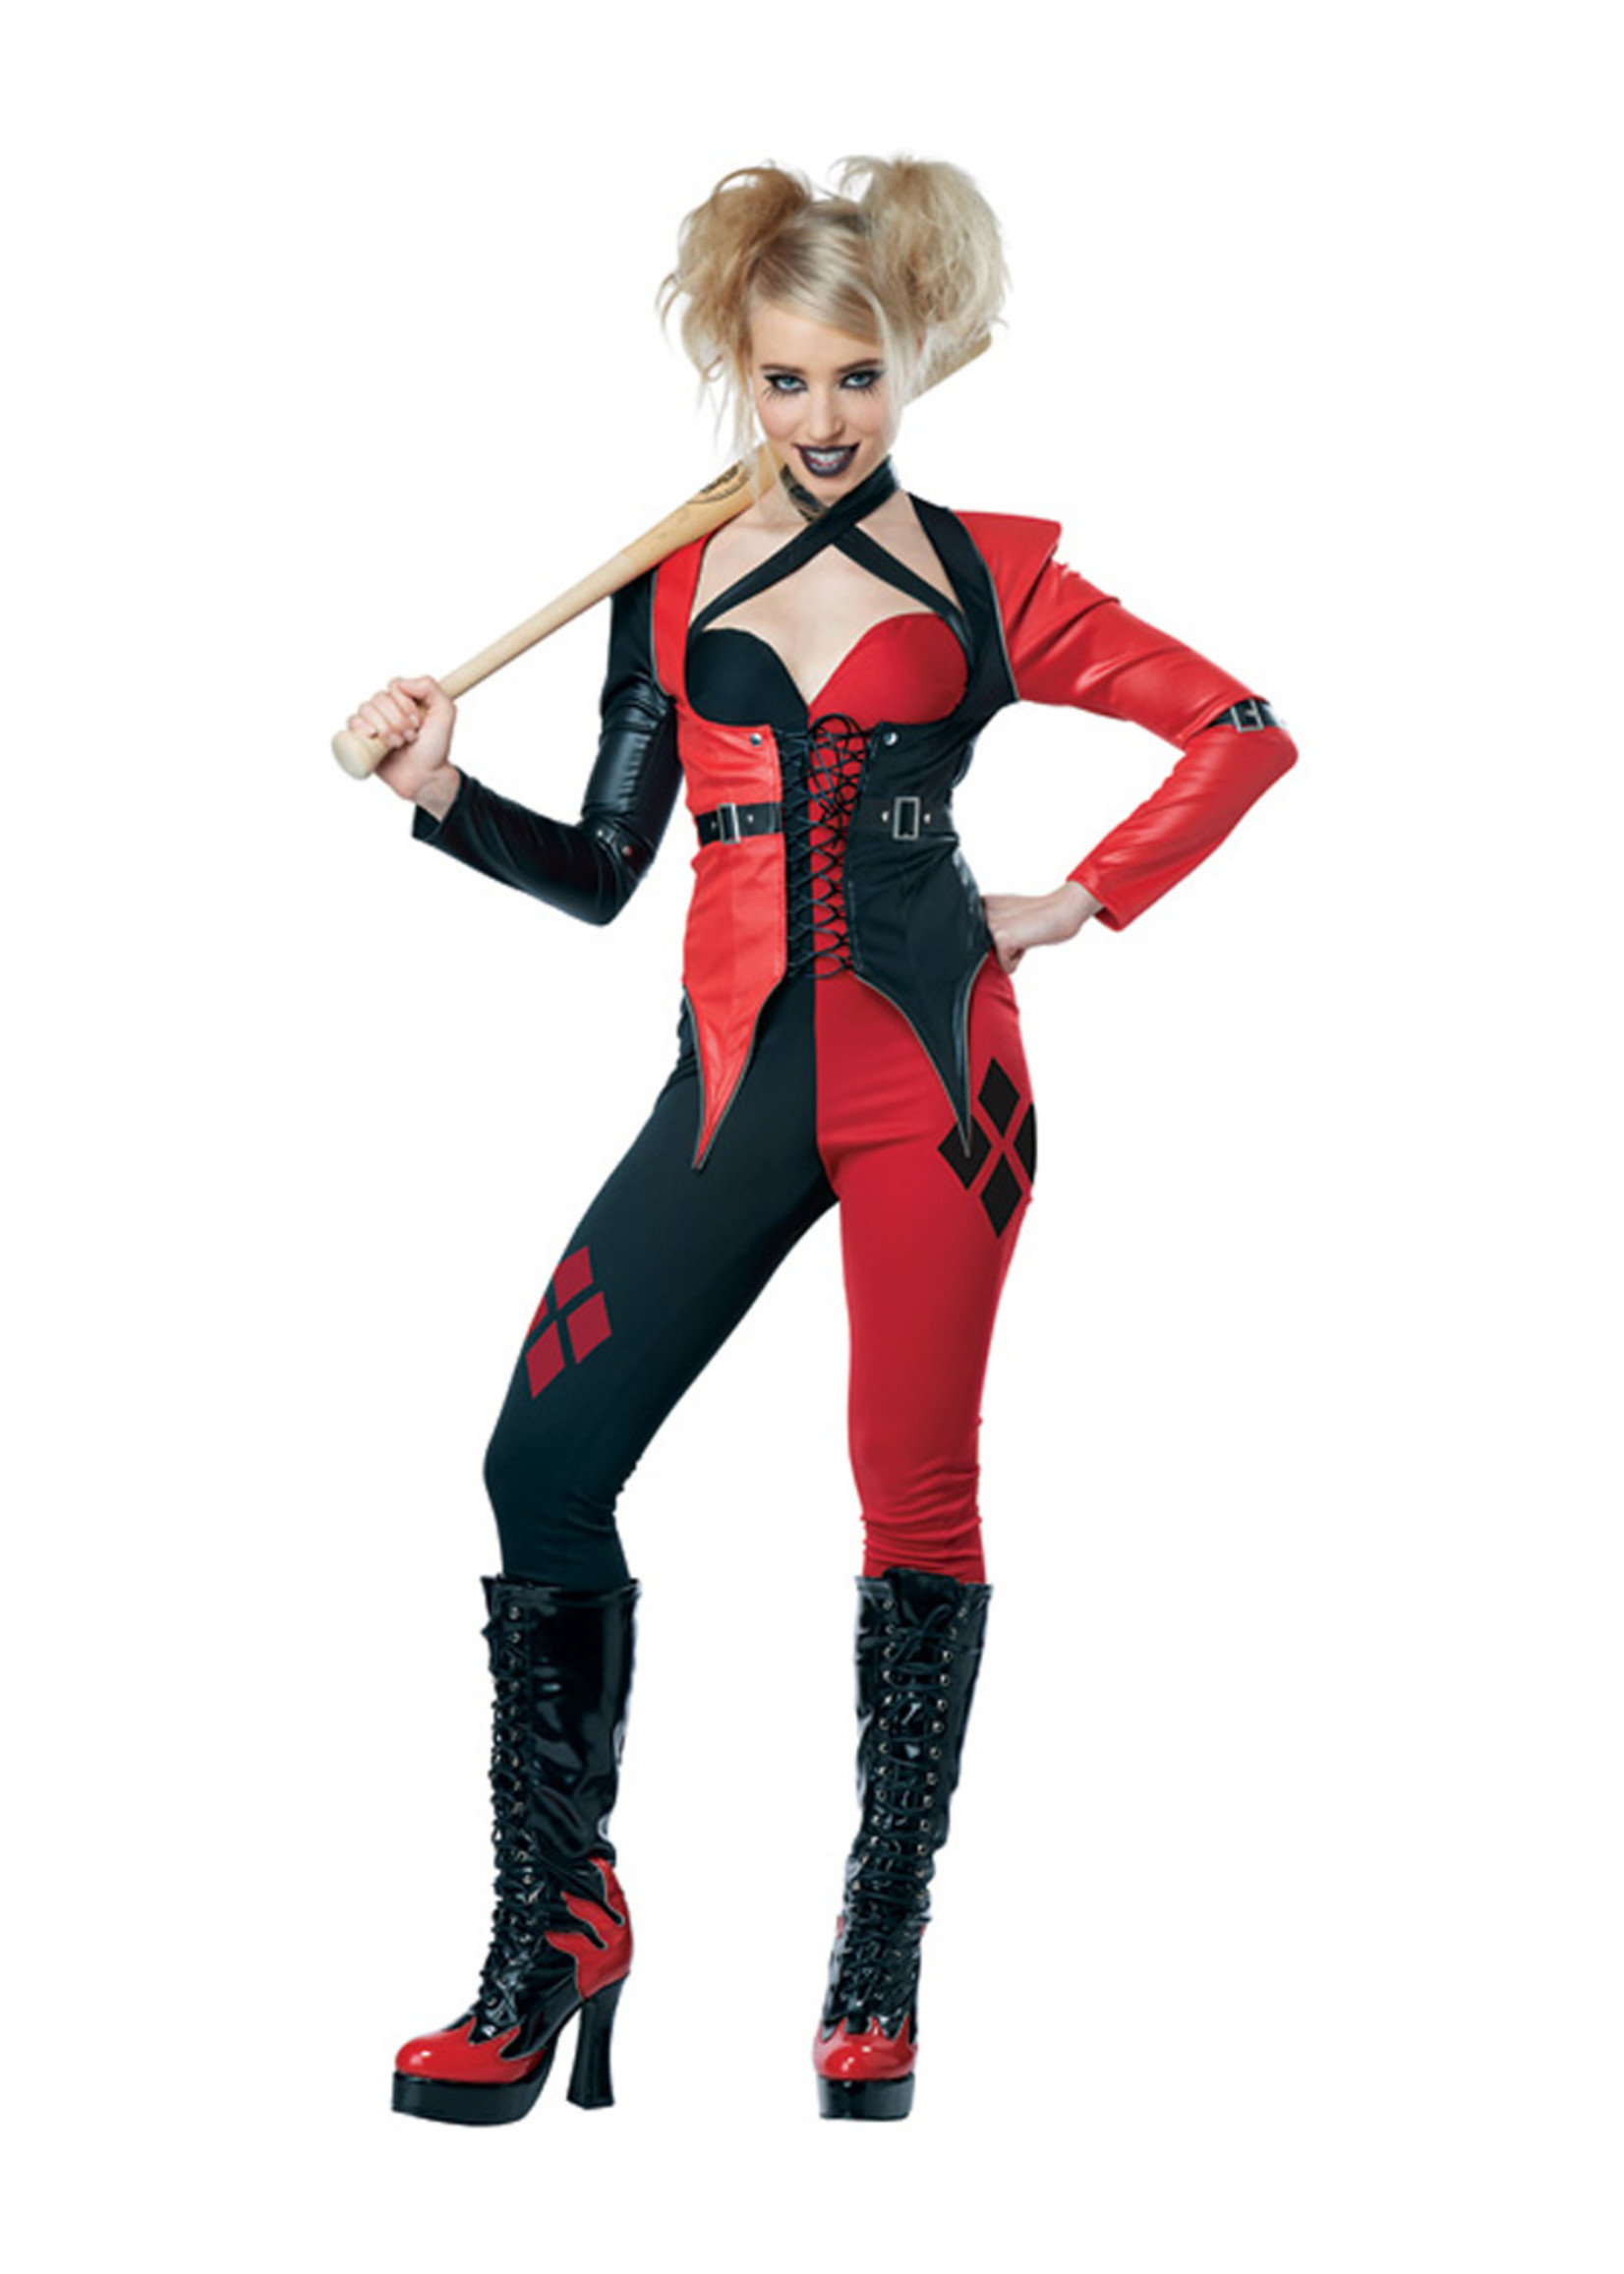 Psycho Jester Chick Costume - Women's